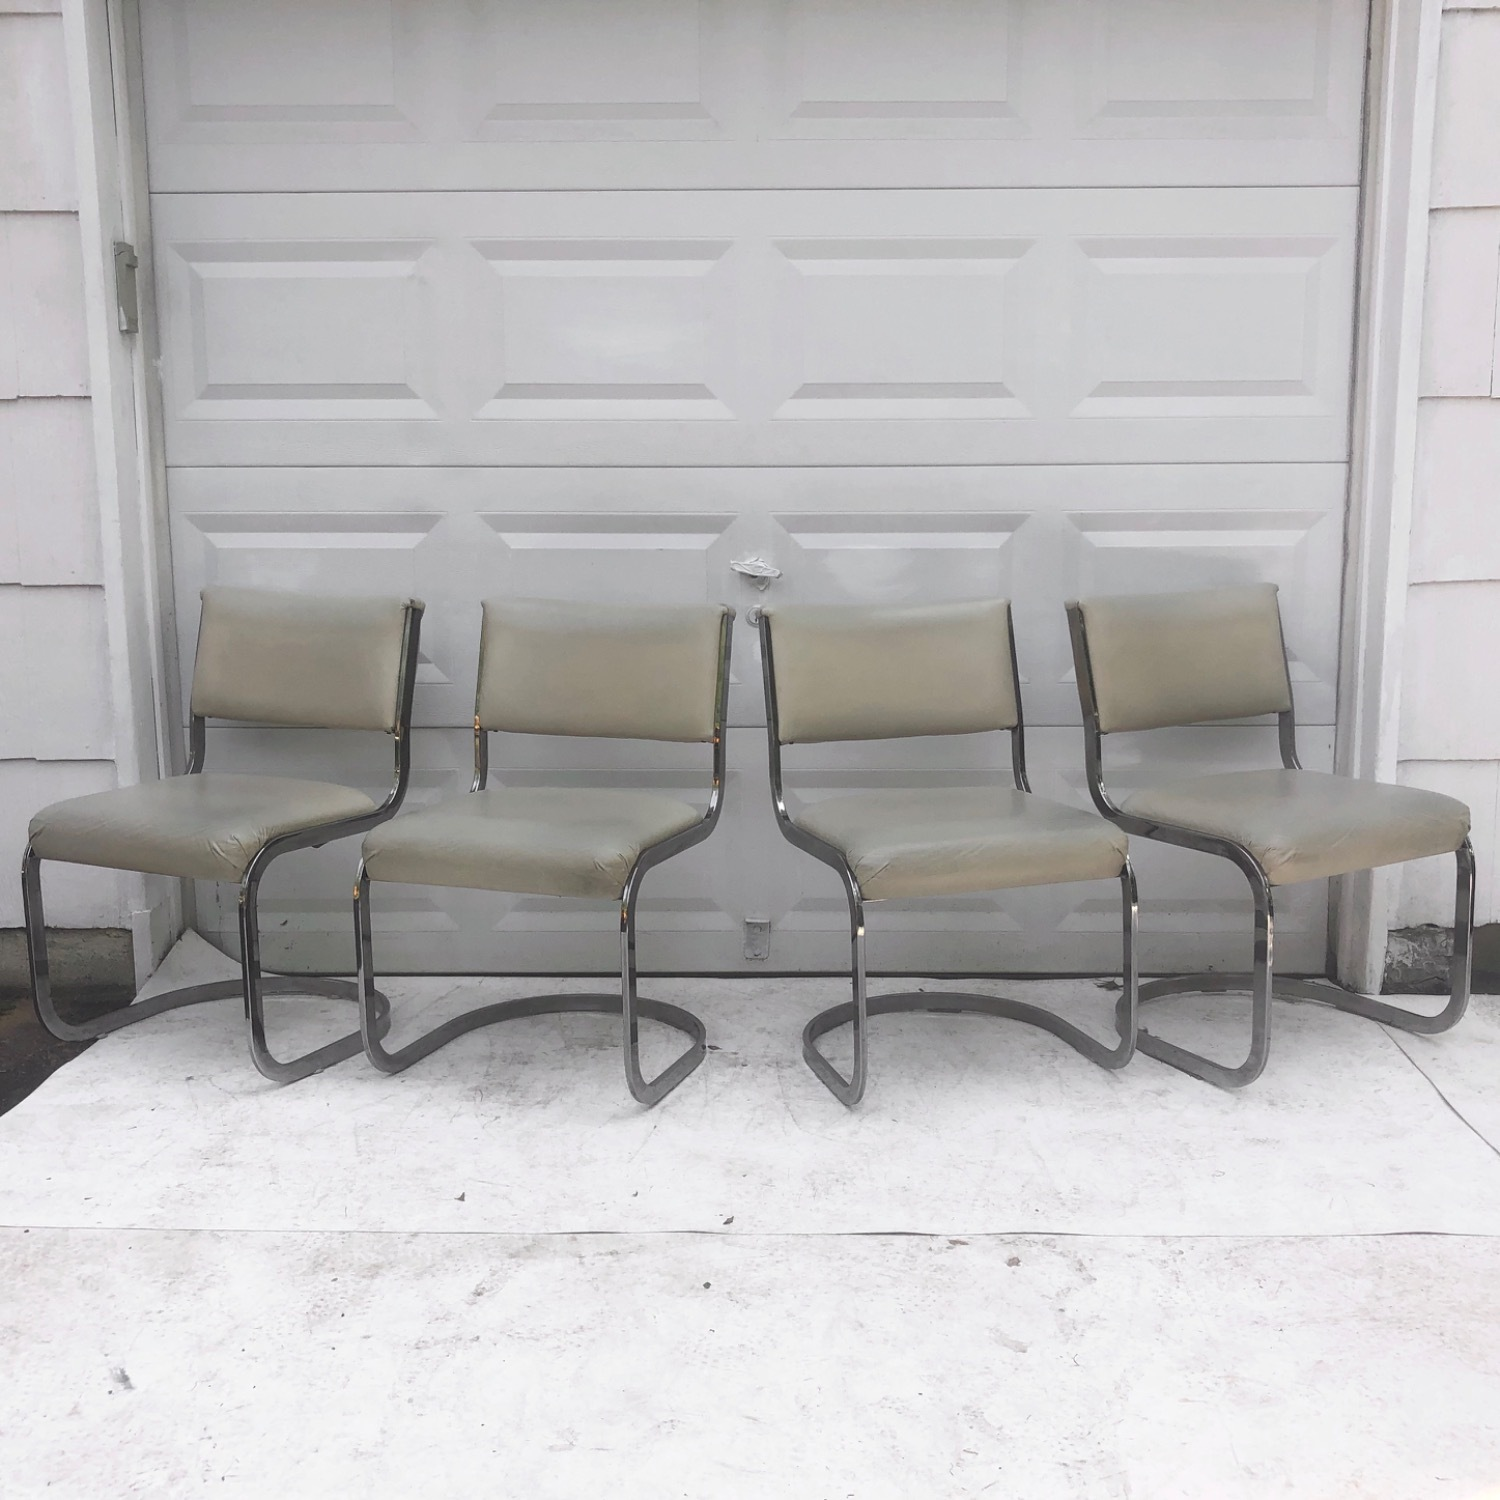 Vintage Modern Dining Chairs Set of 8 - image-2